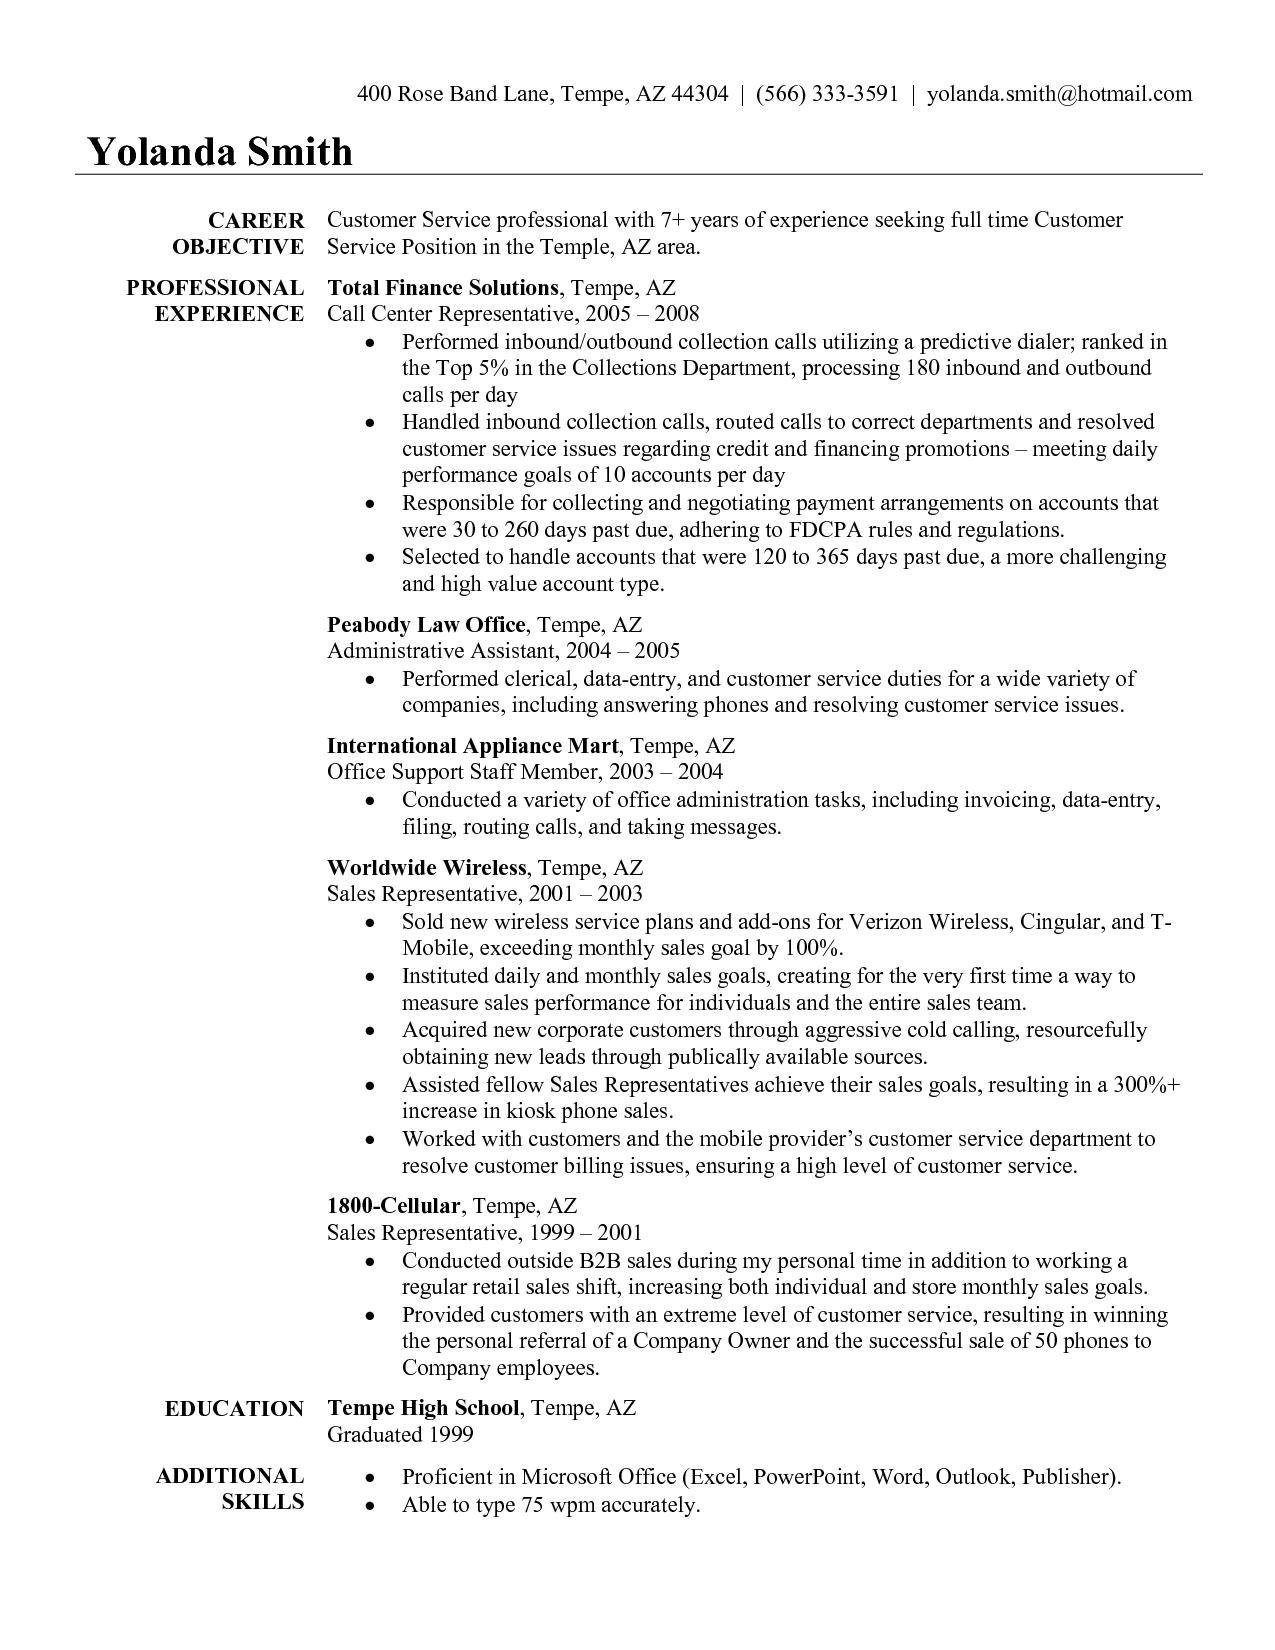 Ability Summary Resume Example Resume Sales Resume Gif Good Perfect Resume  Example Resume And Cover Letter Aploon.